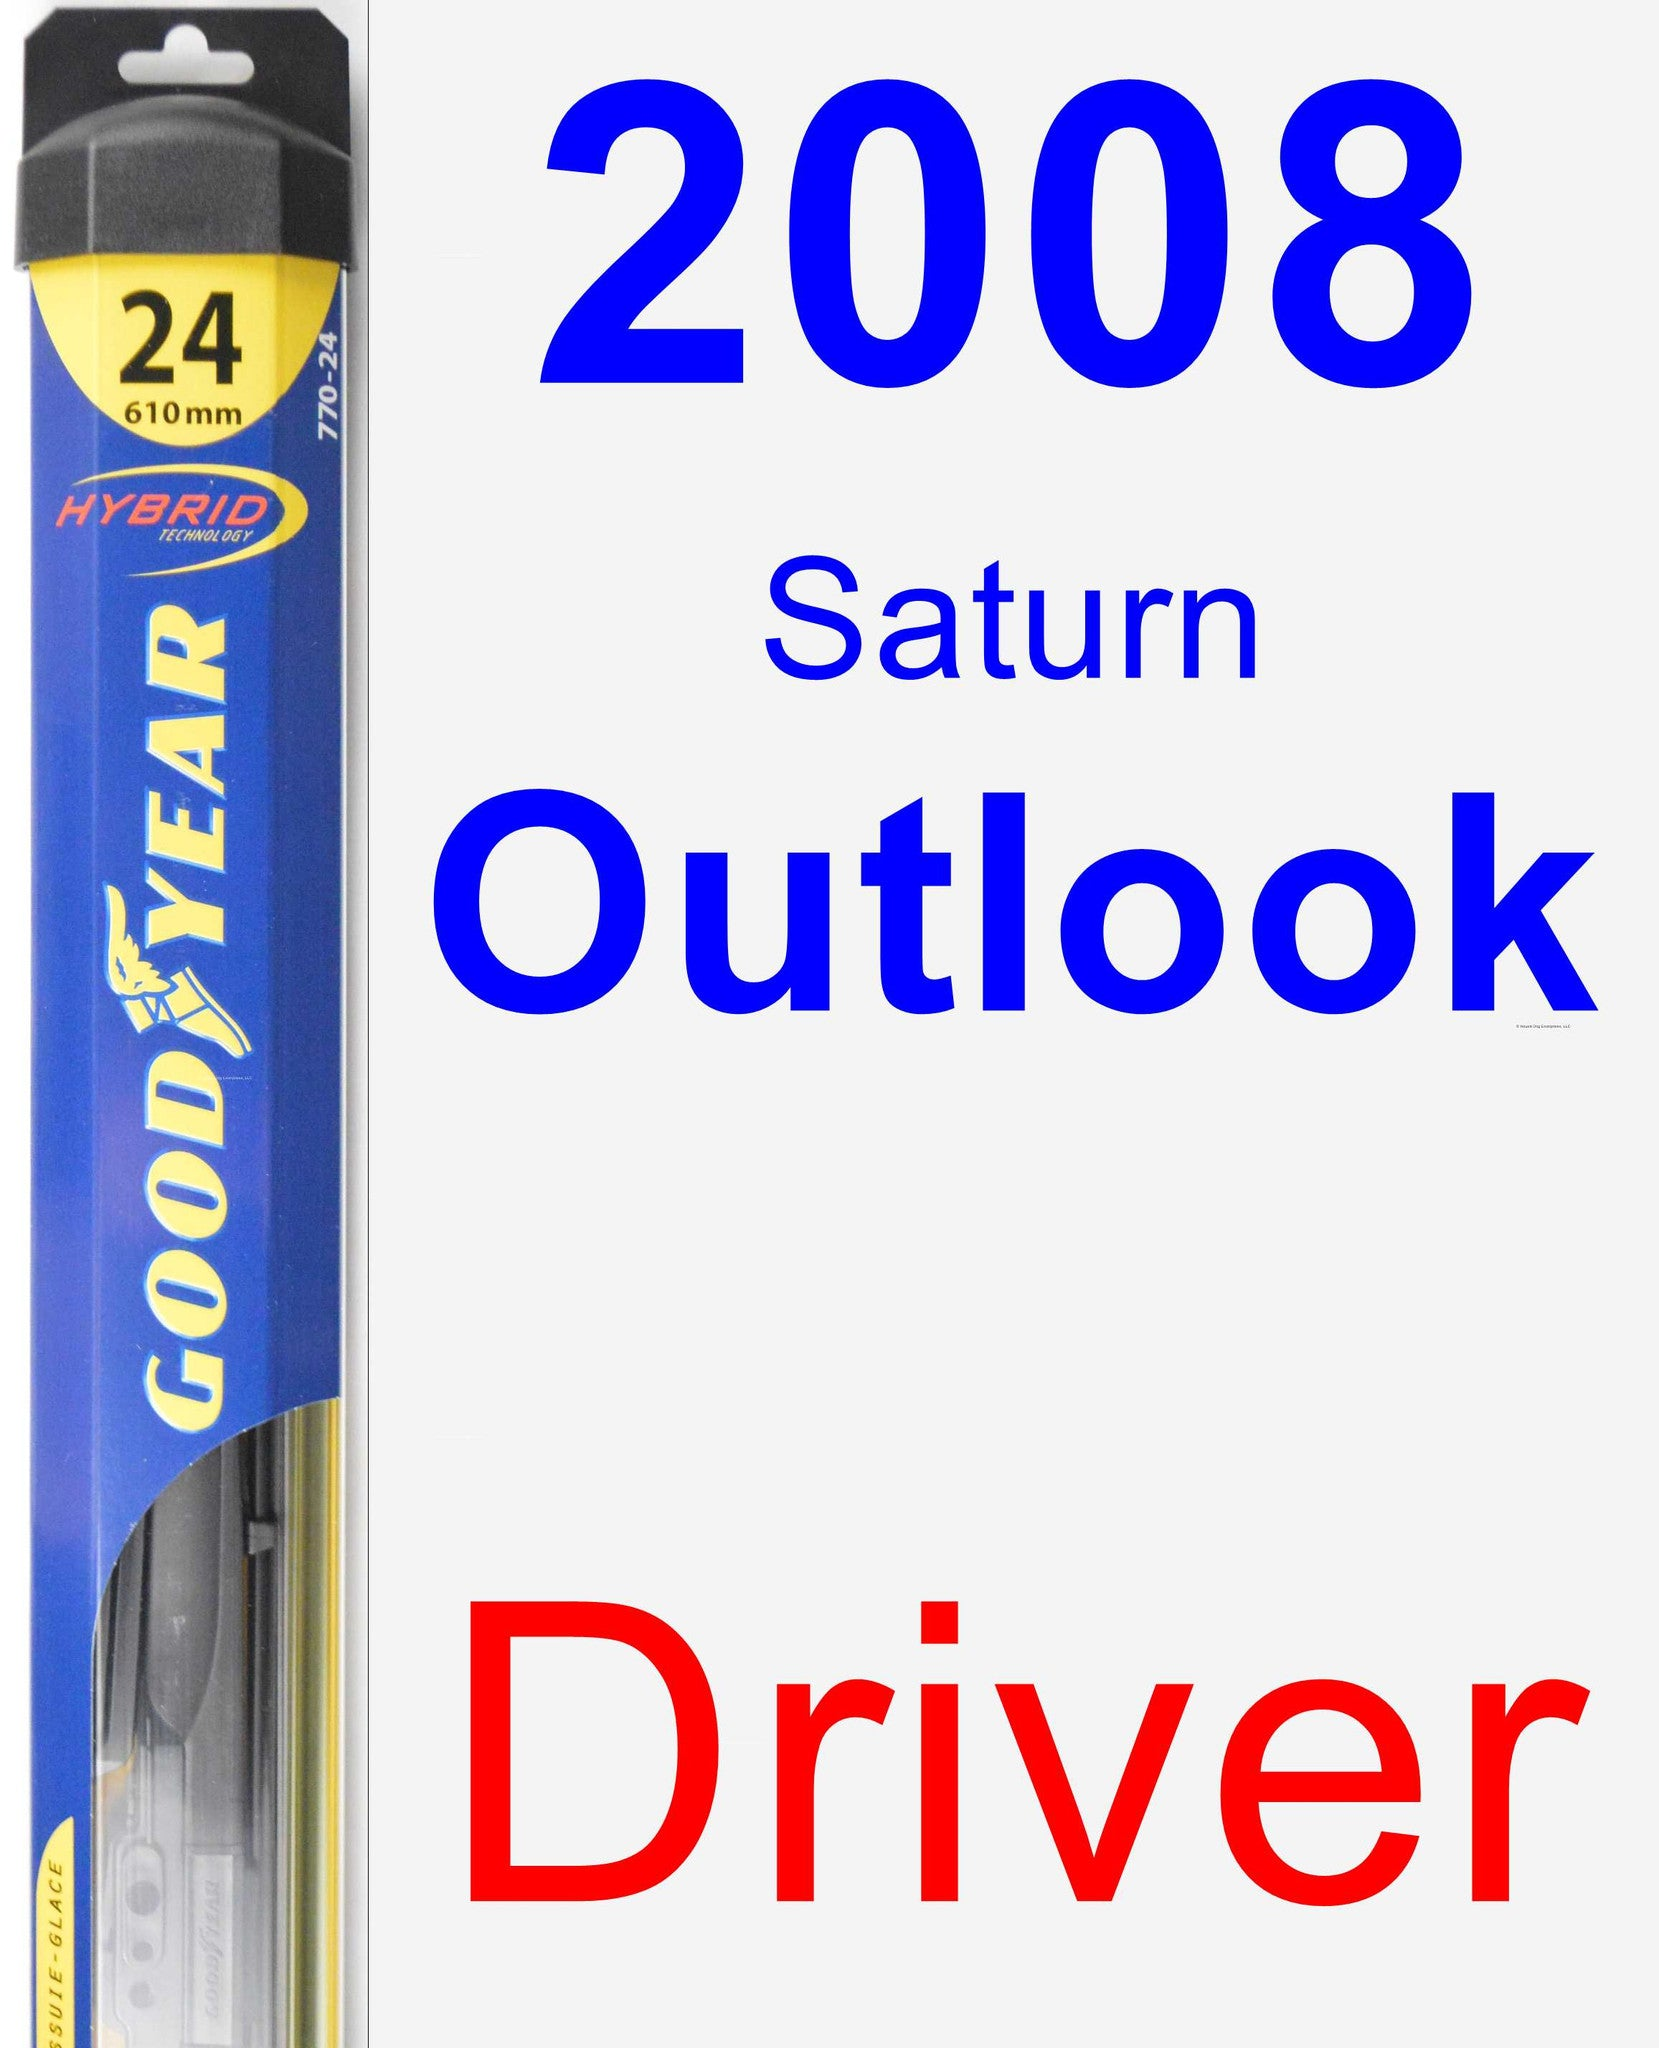 Driver Wiper Blade for 2008 Saturn Outlook - Hybrid